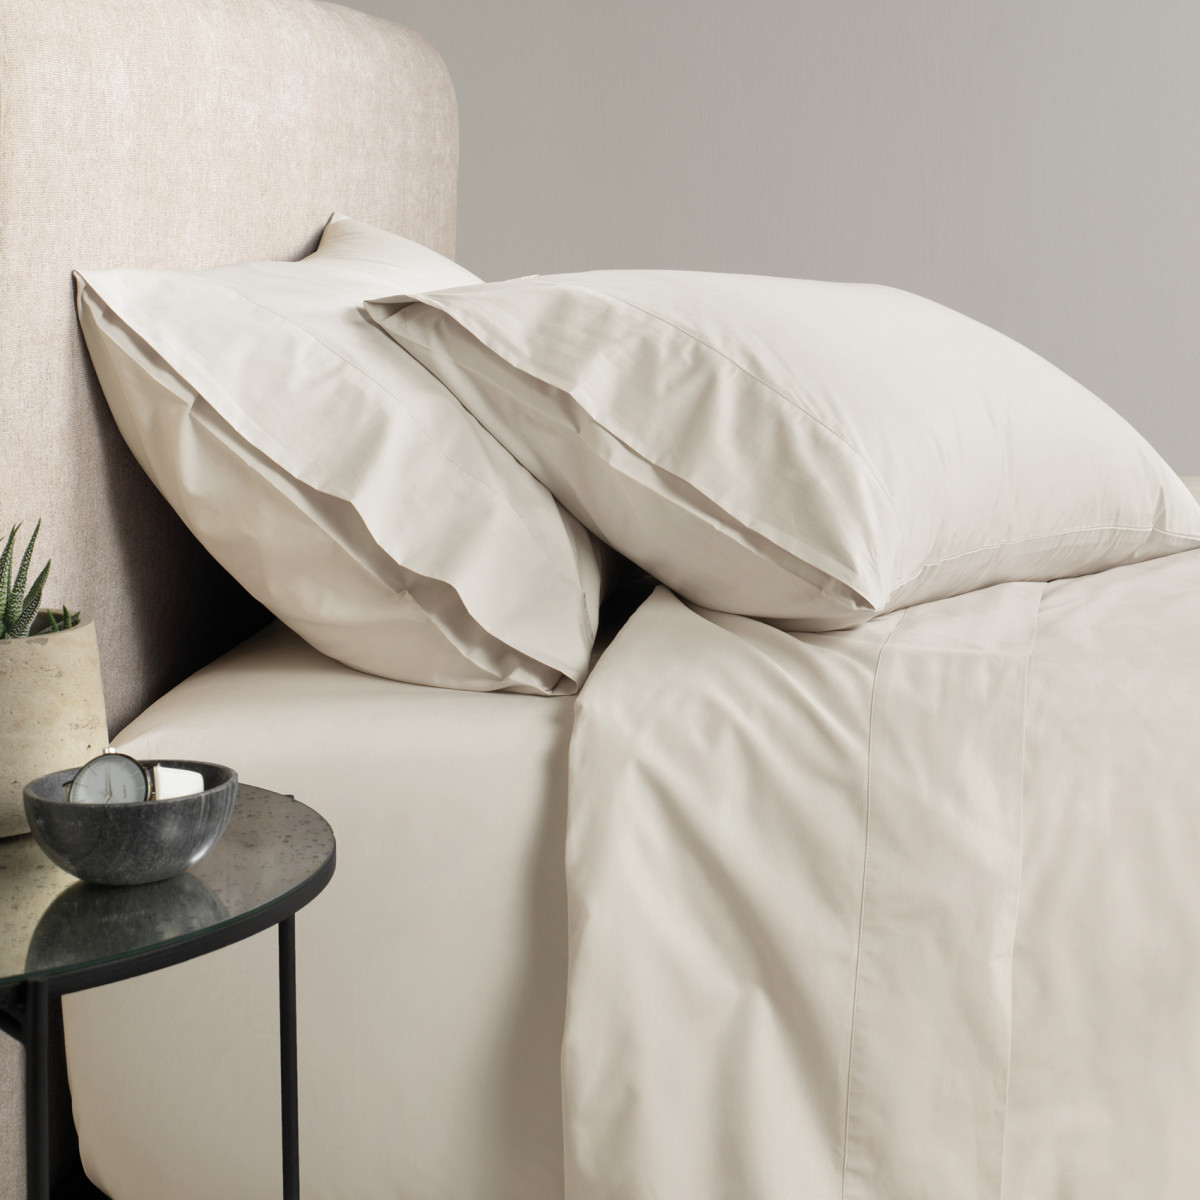 Sheridan 300tc Percale flat sheet - Sand